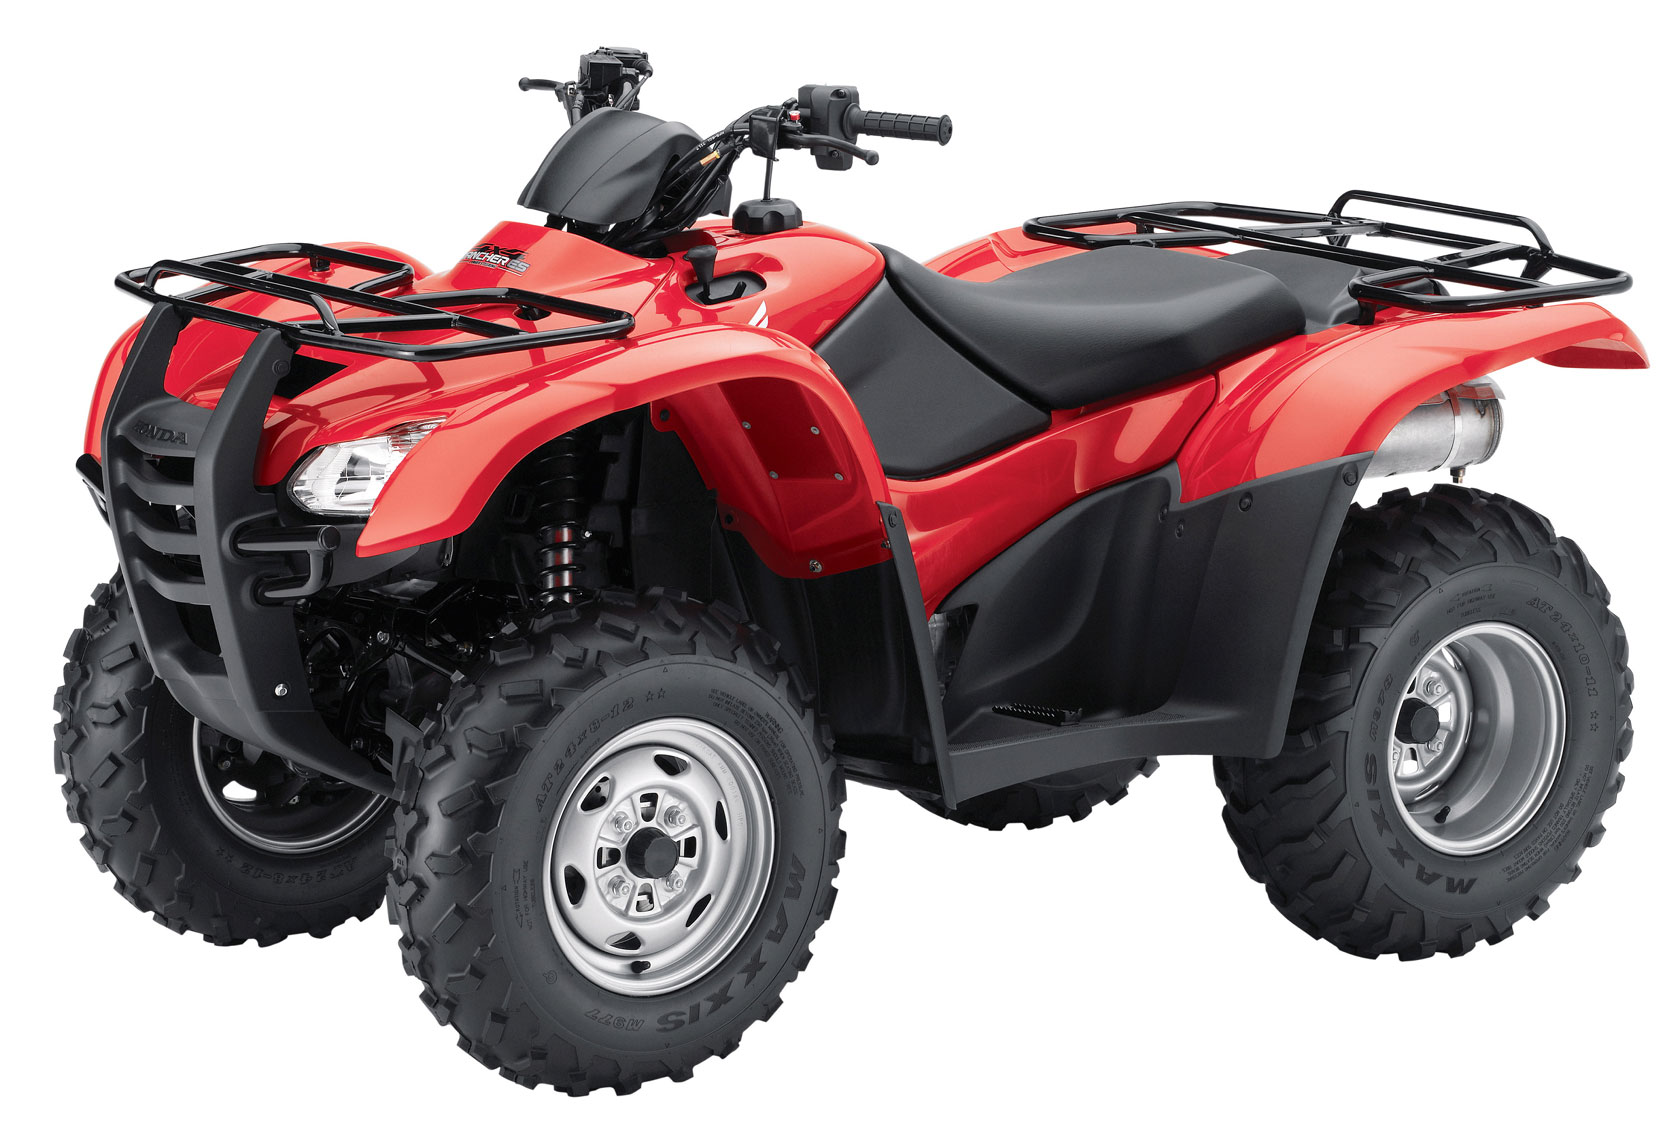 honda fourtrax rancher 4x4-pic. 1